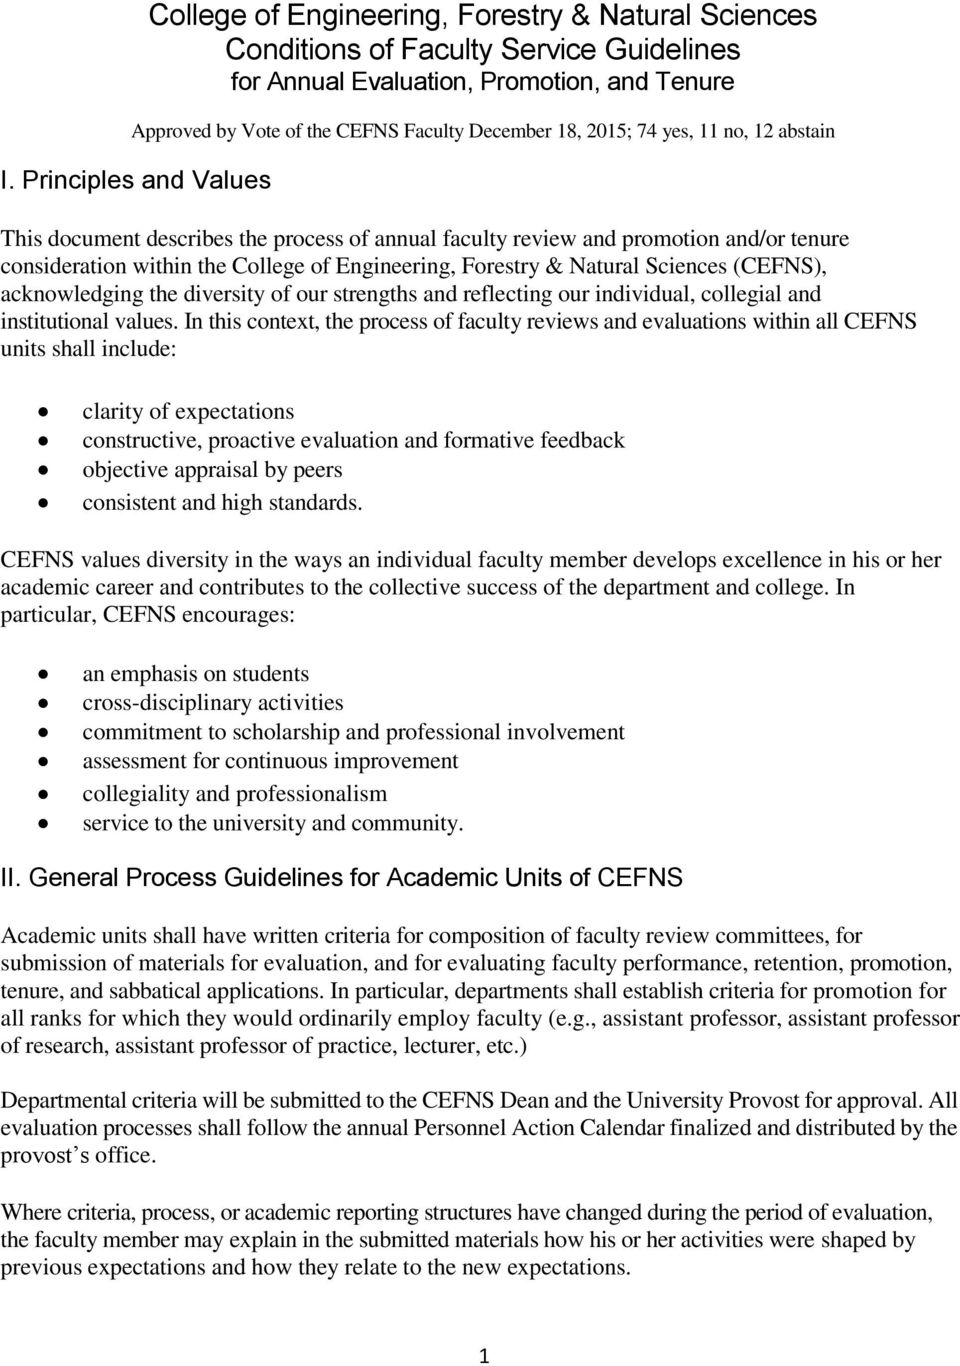 Principles and Values This document describes the process of annual faculty review and promotion and/or tenure consideration within the College of Engineering, Forestry & Natural Sciences (CEFNS),